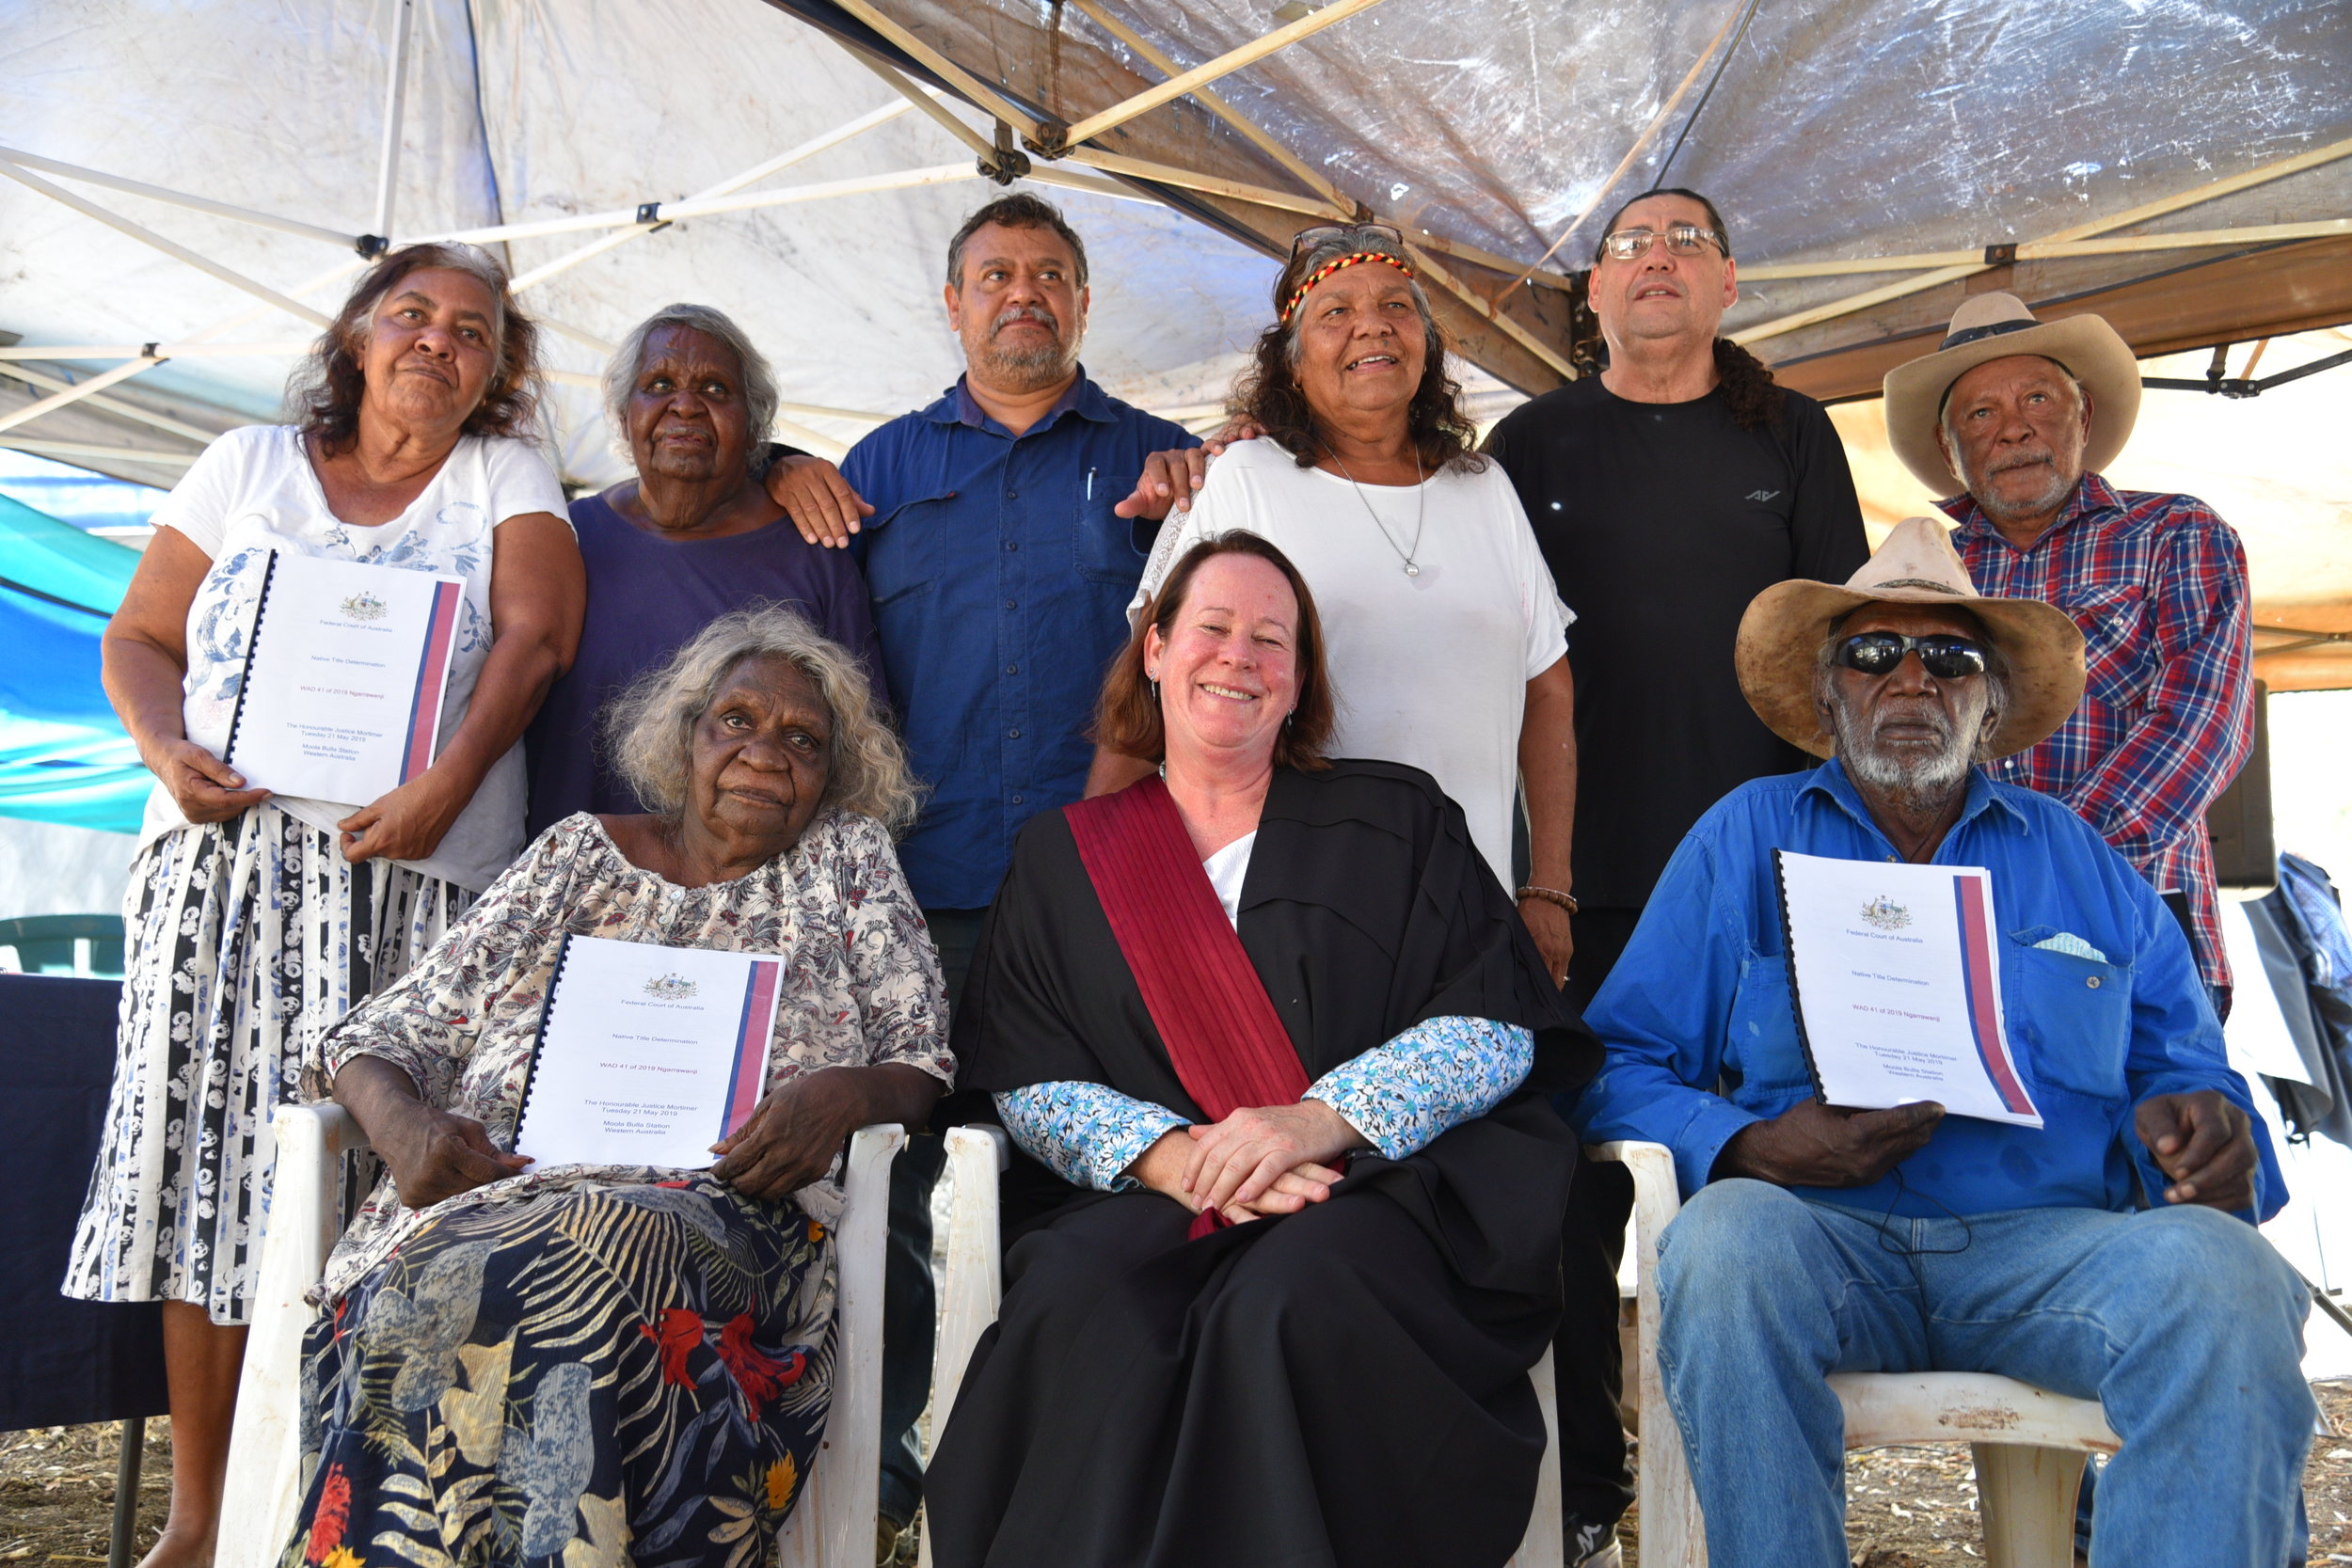 Members of the Ngarrawanji Applicant (from back left) Josie Sarah, Jennifer Tait, Greg Tait, Josie Farrer, Mark Bin Baker, Marty Stevens (front left) Phyllis Wallaby, Justice Mortimer and Matt Dawson.